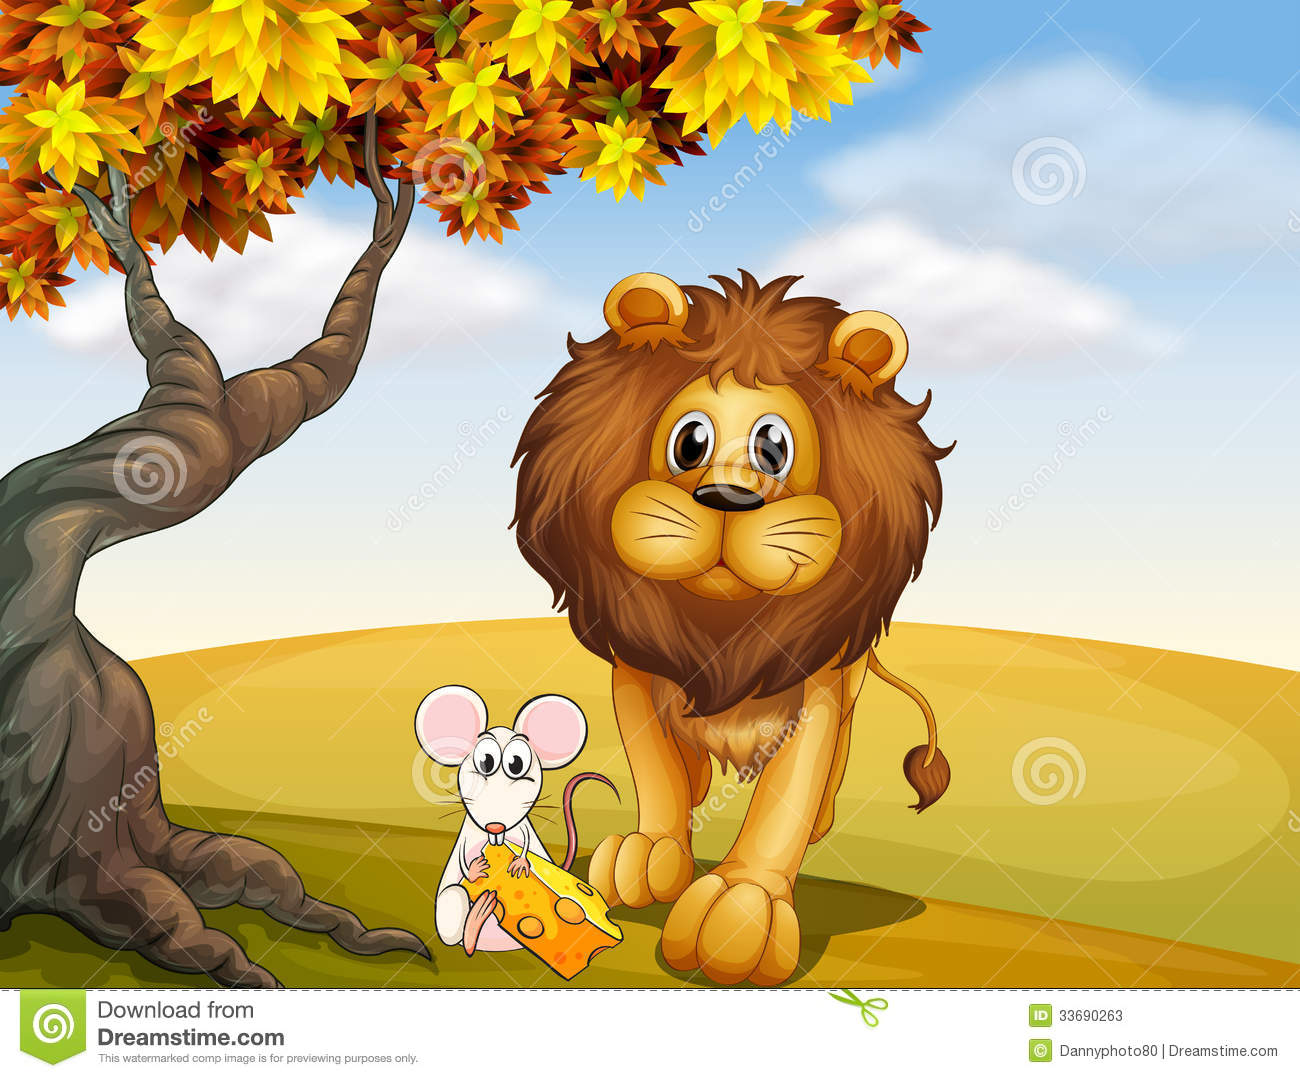 lion and the mouse clipart #18